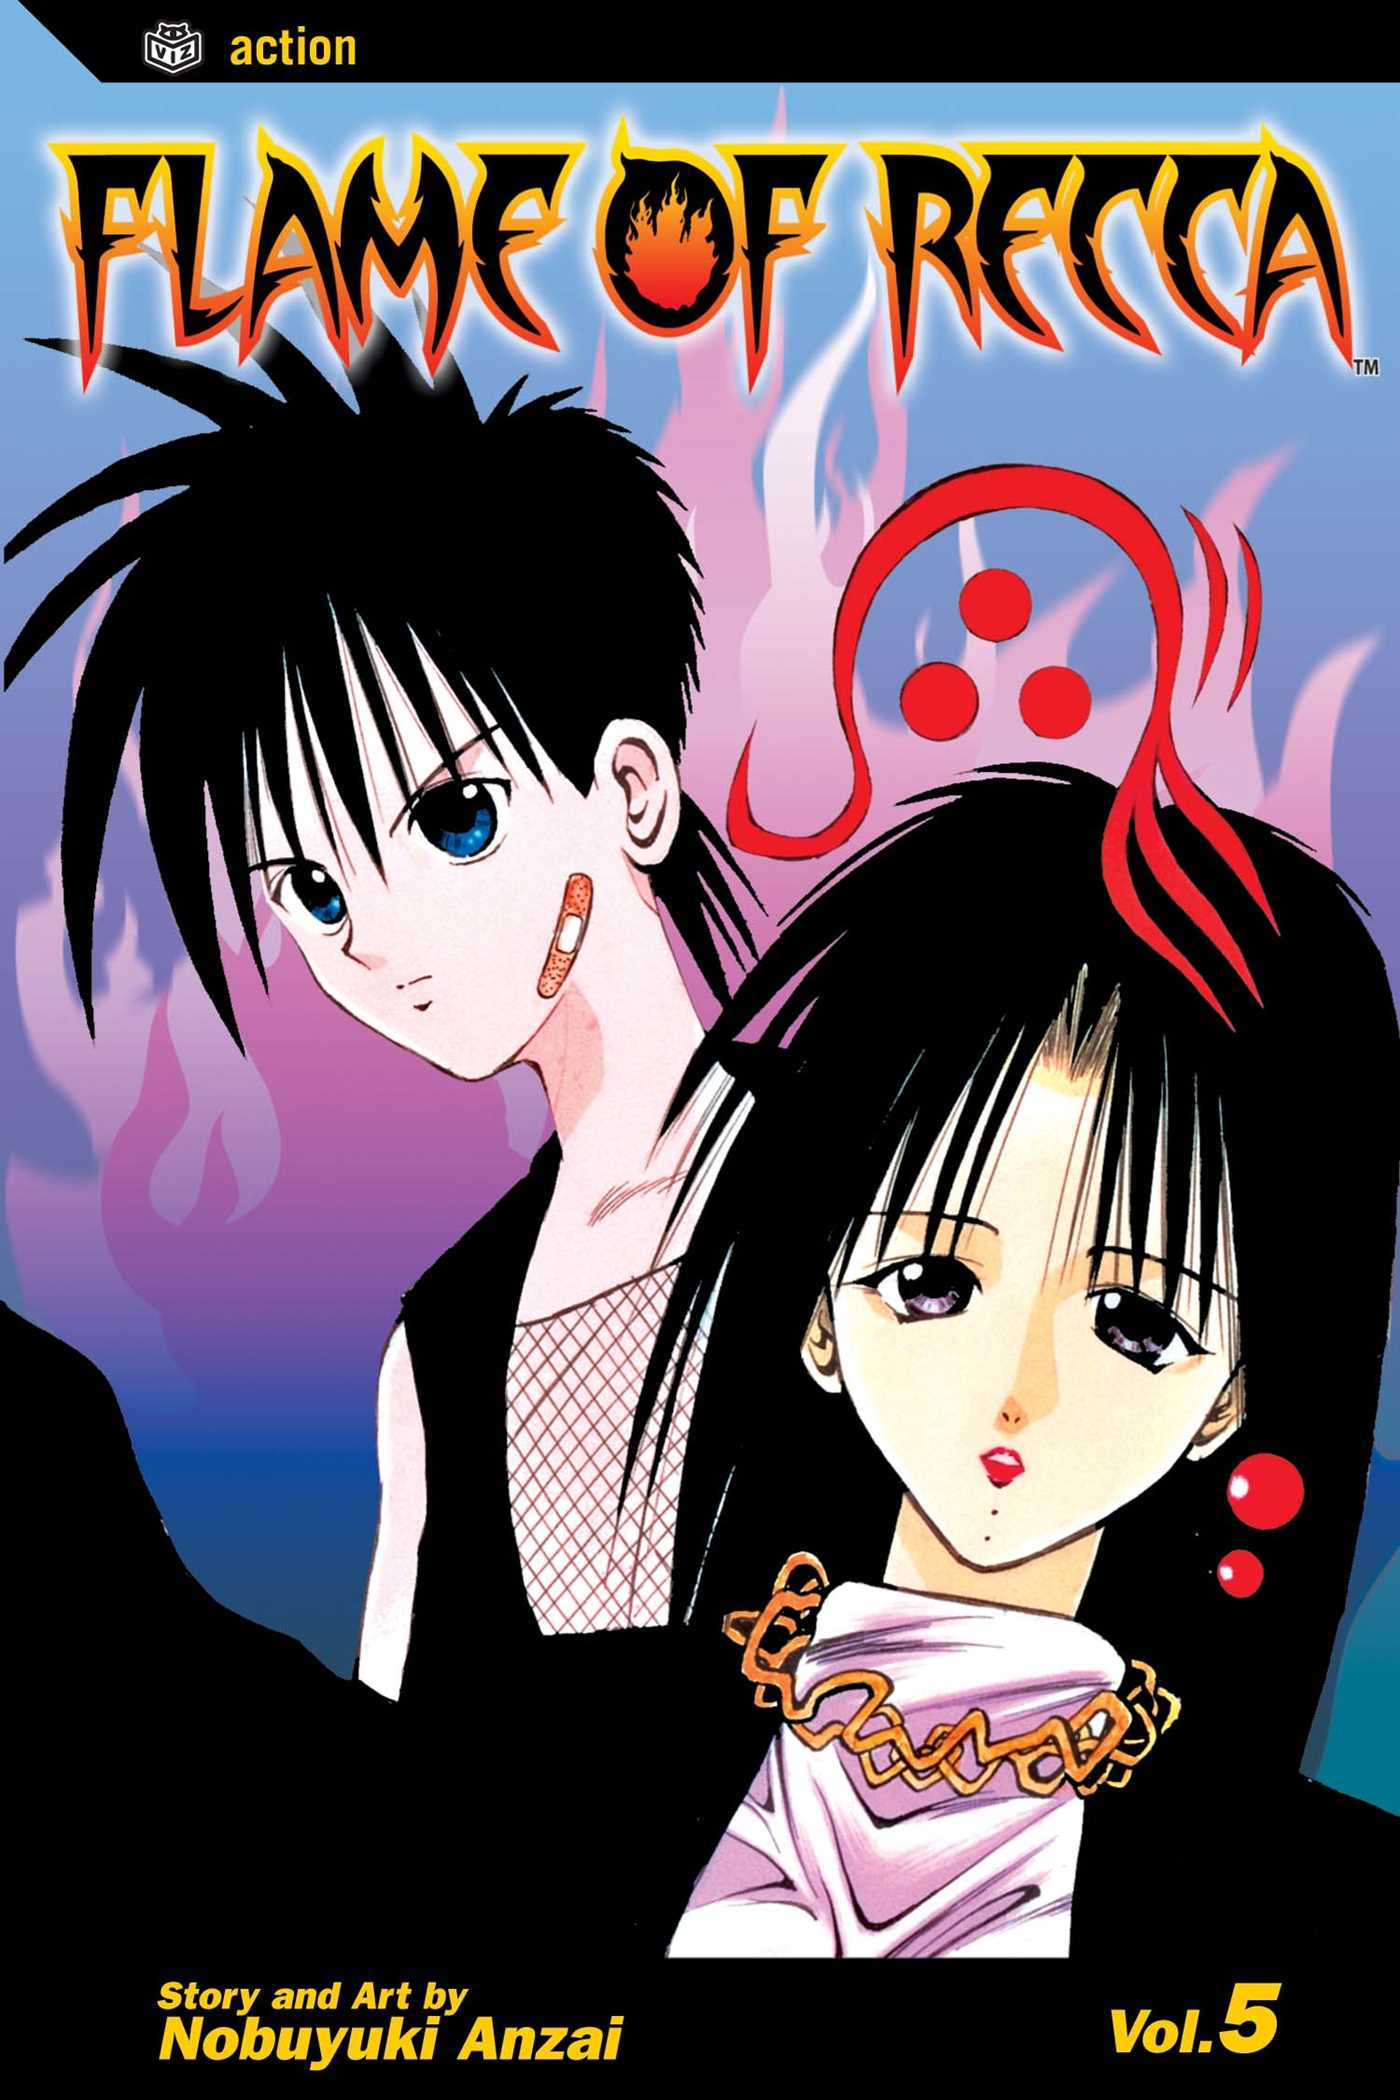 Flame-of-recca-vol-5-9781591161936_hr